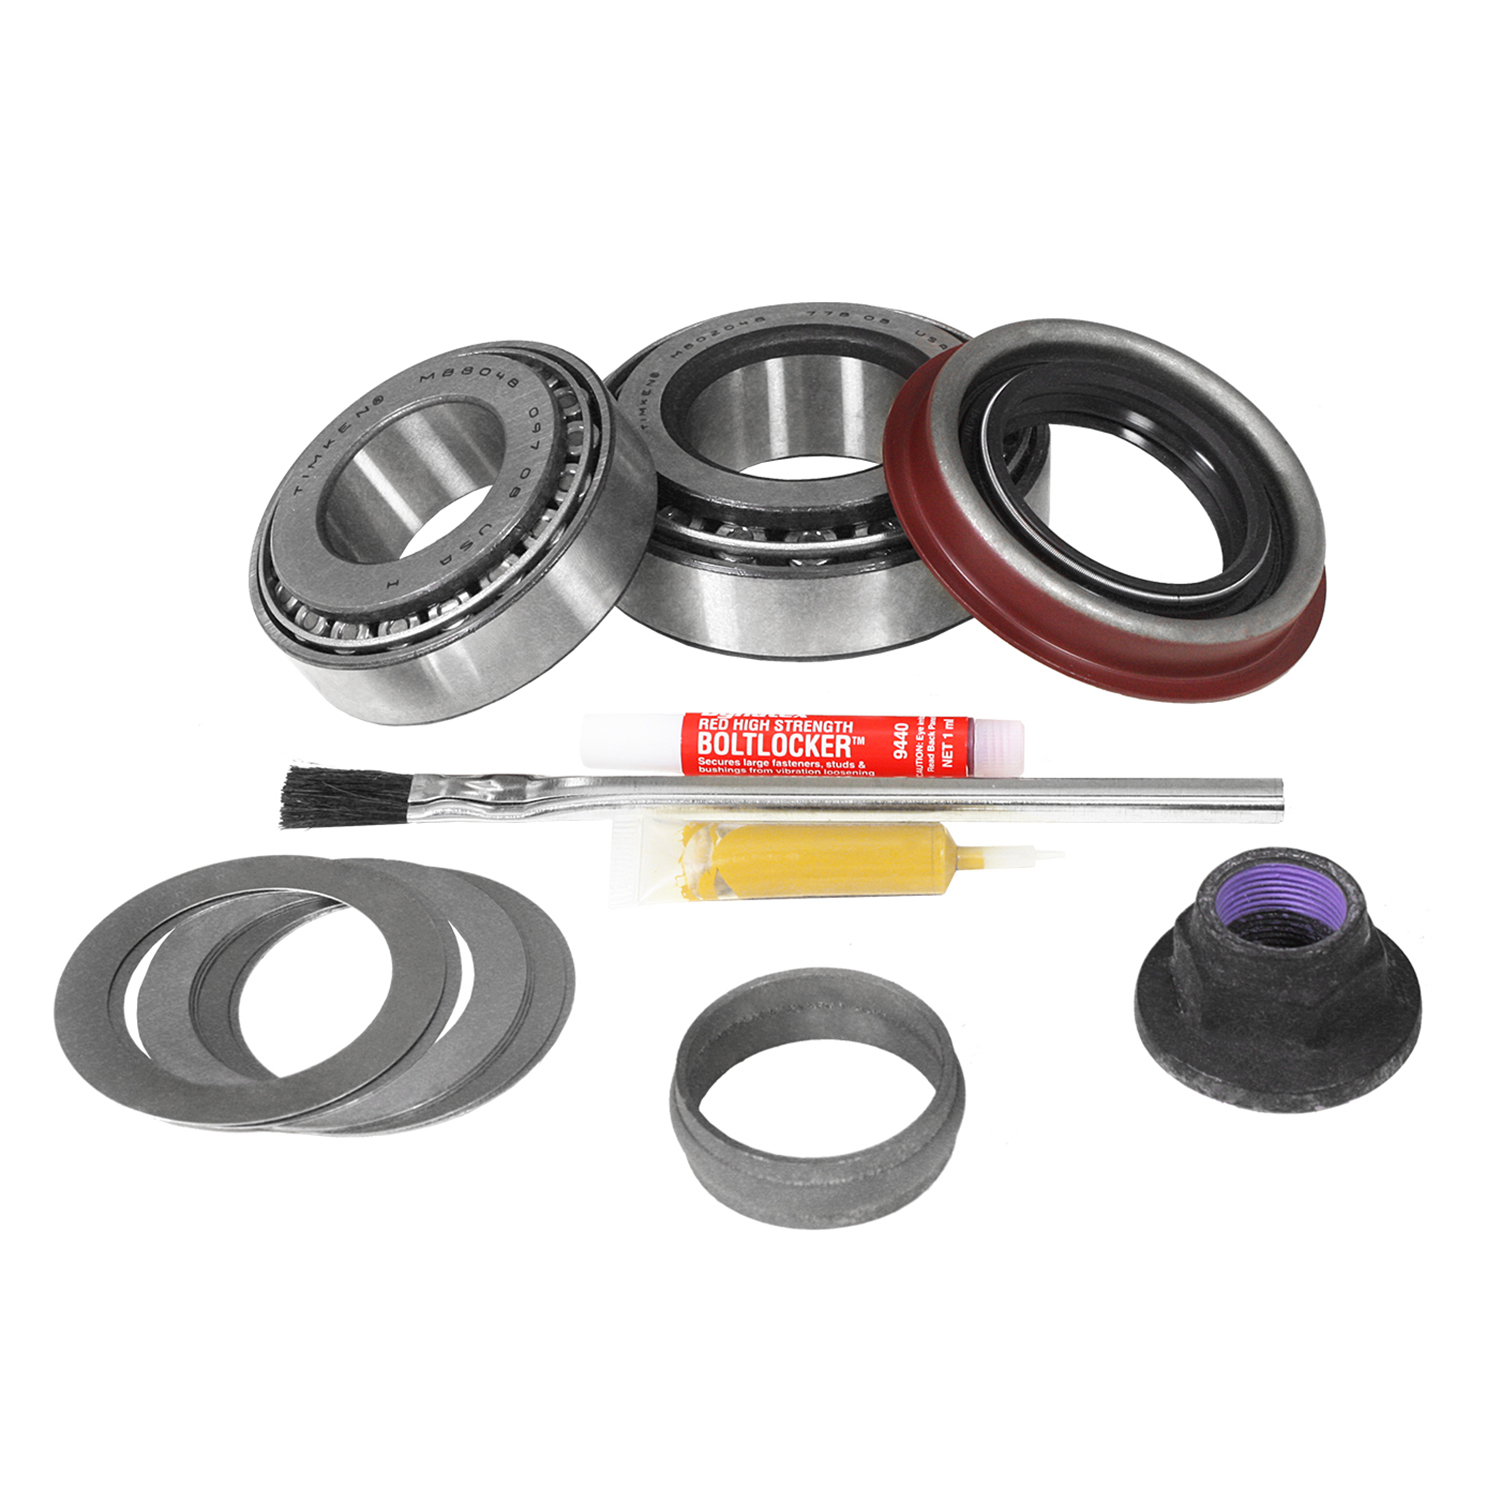 PK F8.8-A - Yukon Pinion install kit for Ford 8.8